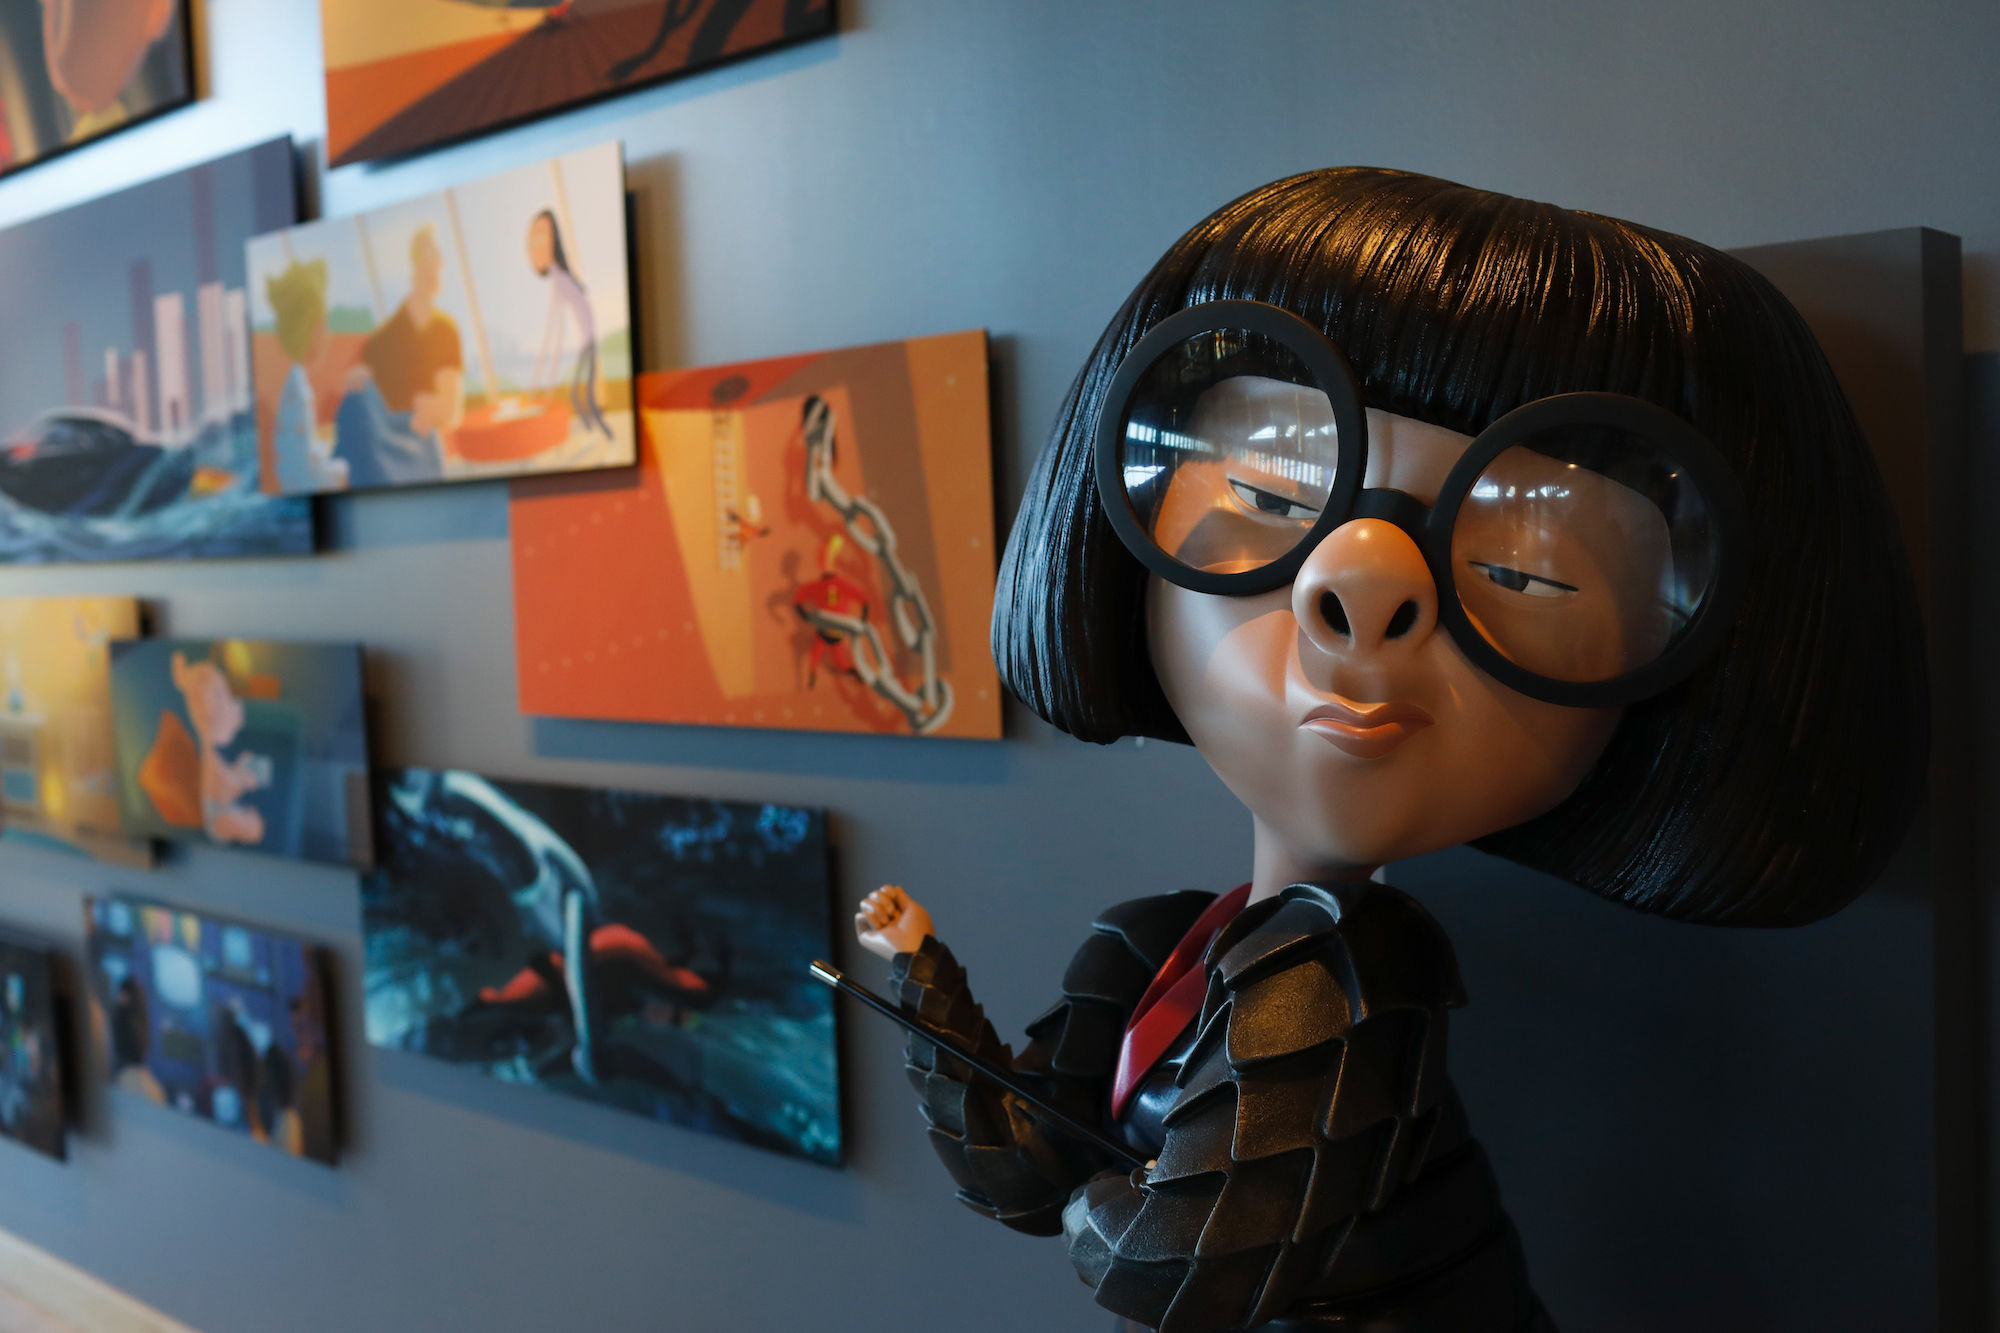 Edna from Incredibles 2 with art gallery